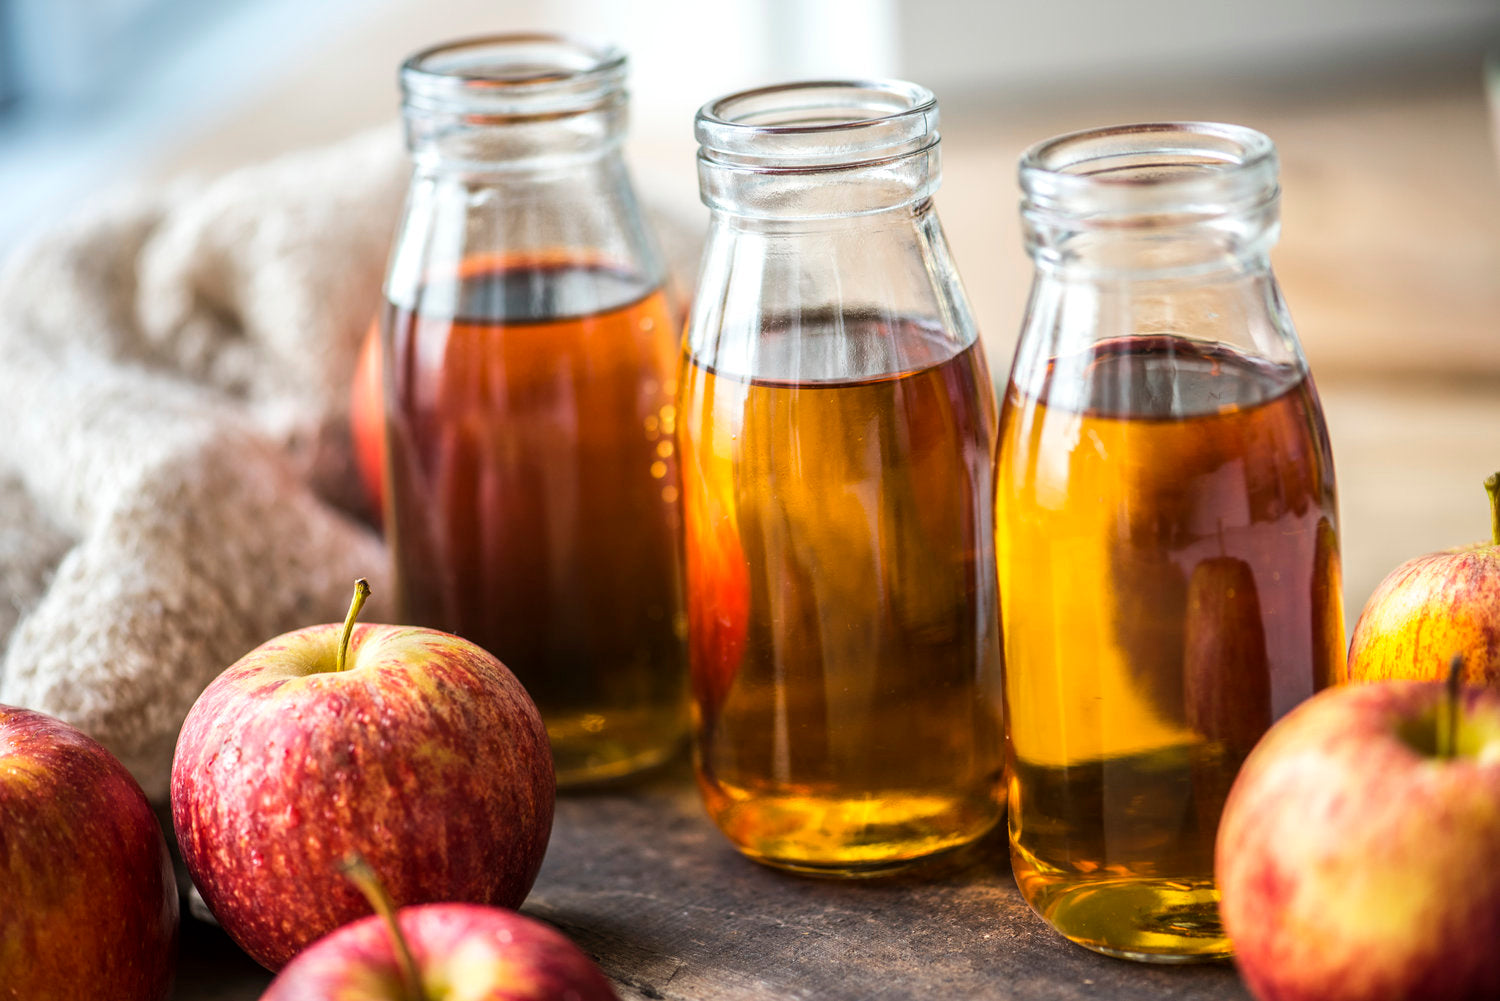 APPLE CIDER VINEGAR - ARE ALL THE CLAIMS VALID?